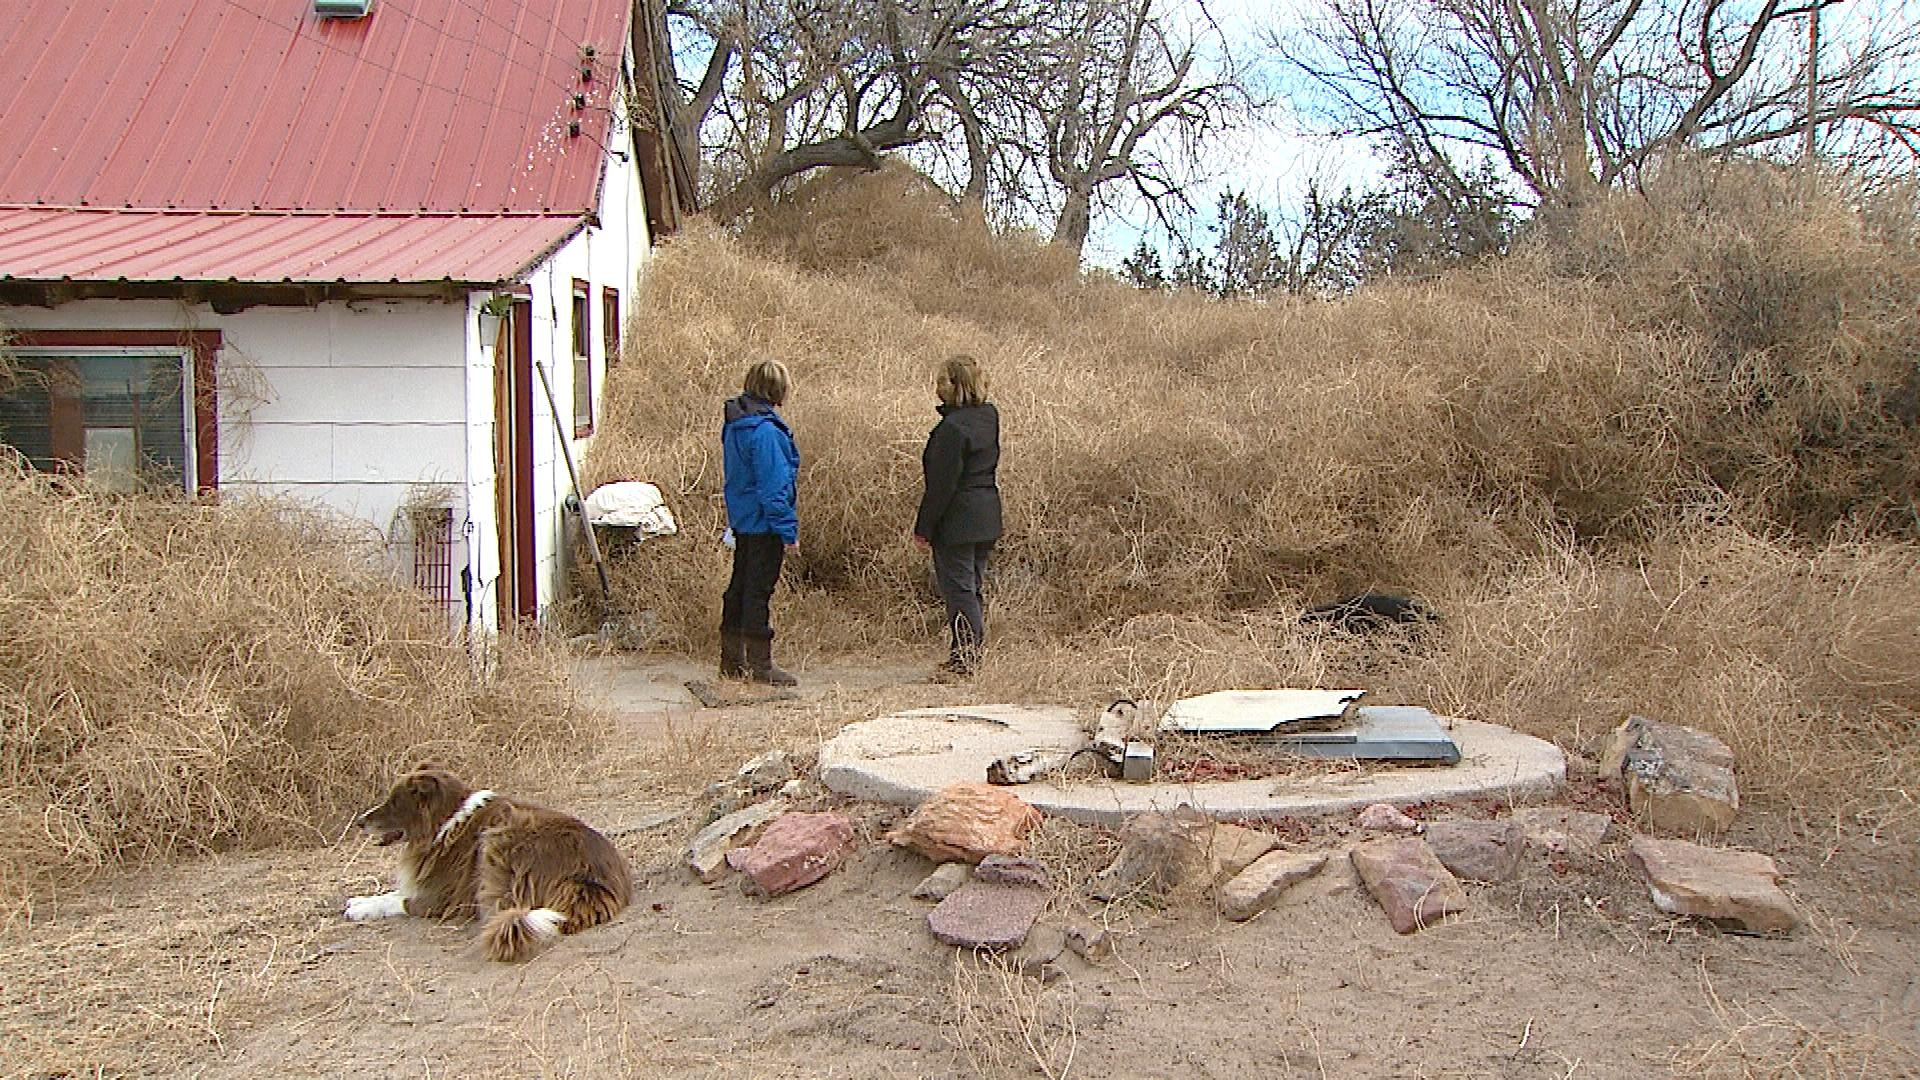 Kelly Myers shows CBS4's Suzanne McCarroll the tumbleweeds taking over her property (credit: CBS)